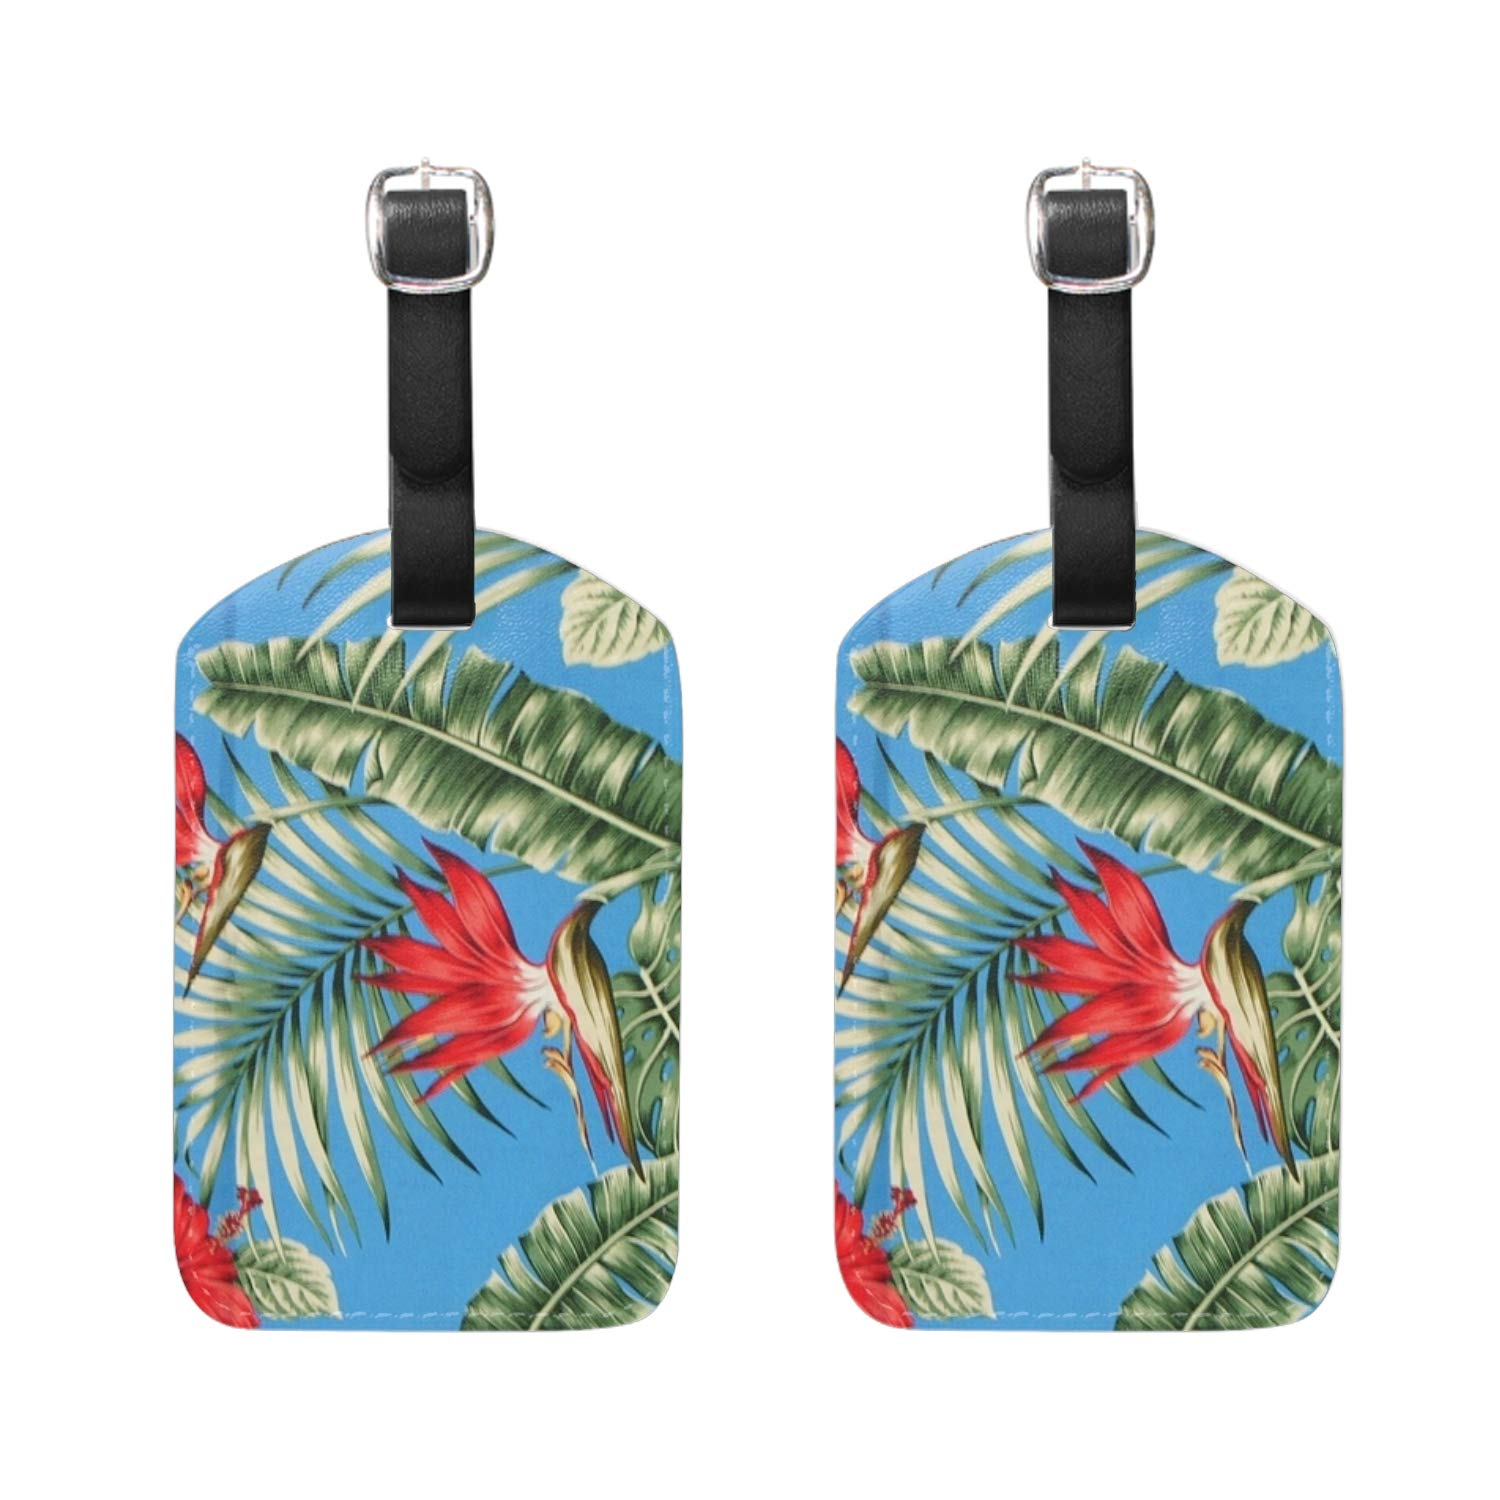 Peacock Feathers Pattern Luggage Tags /& Bag Tags 2 pieces Set